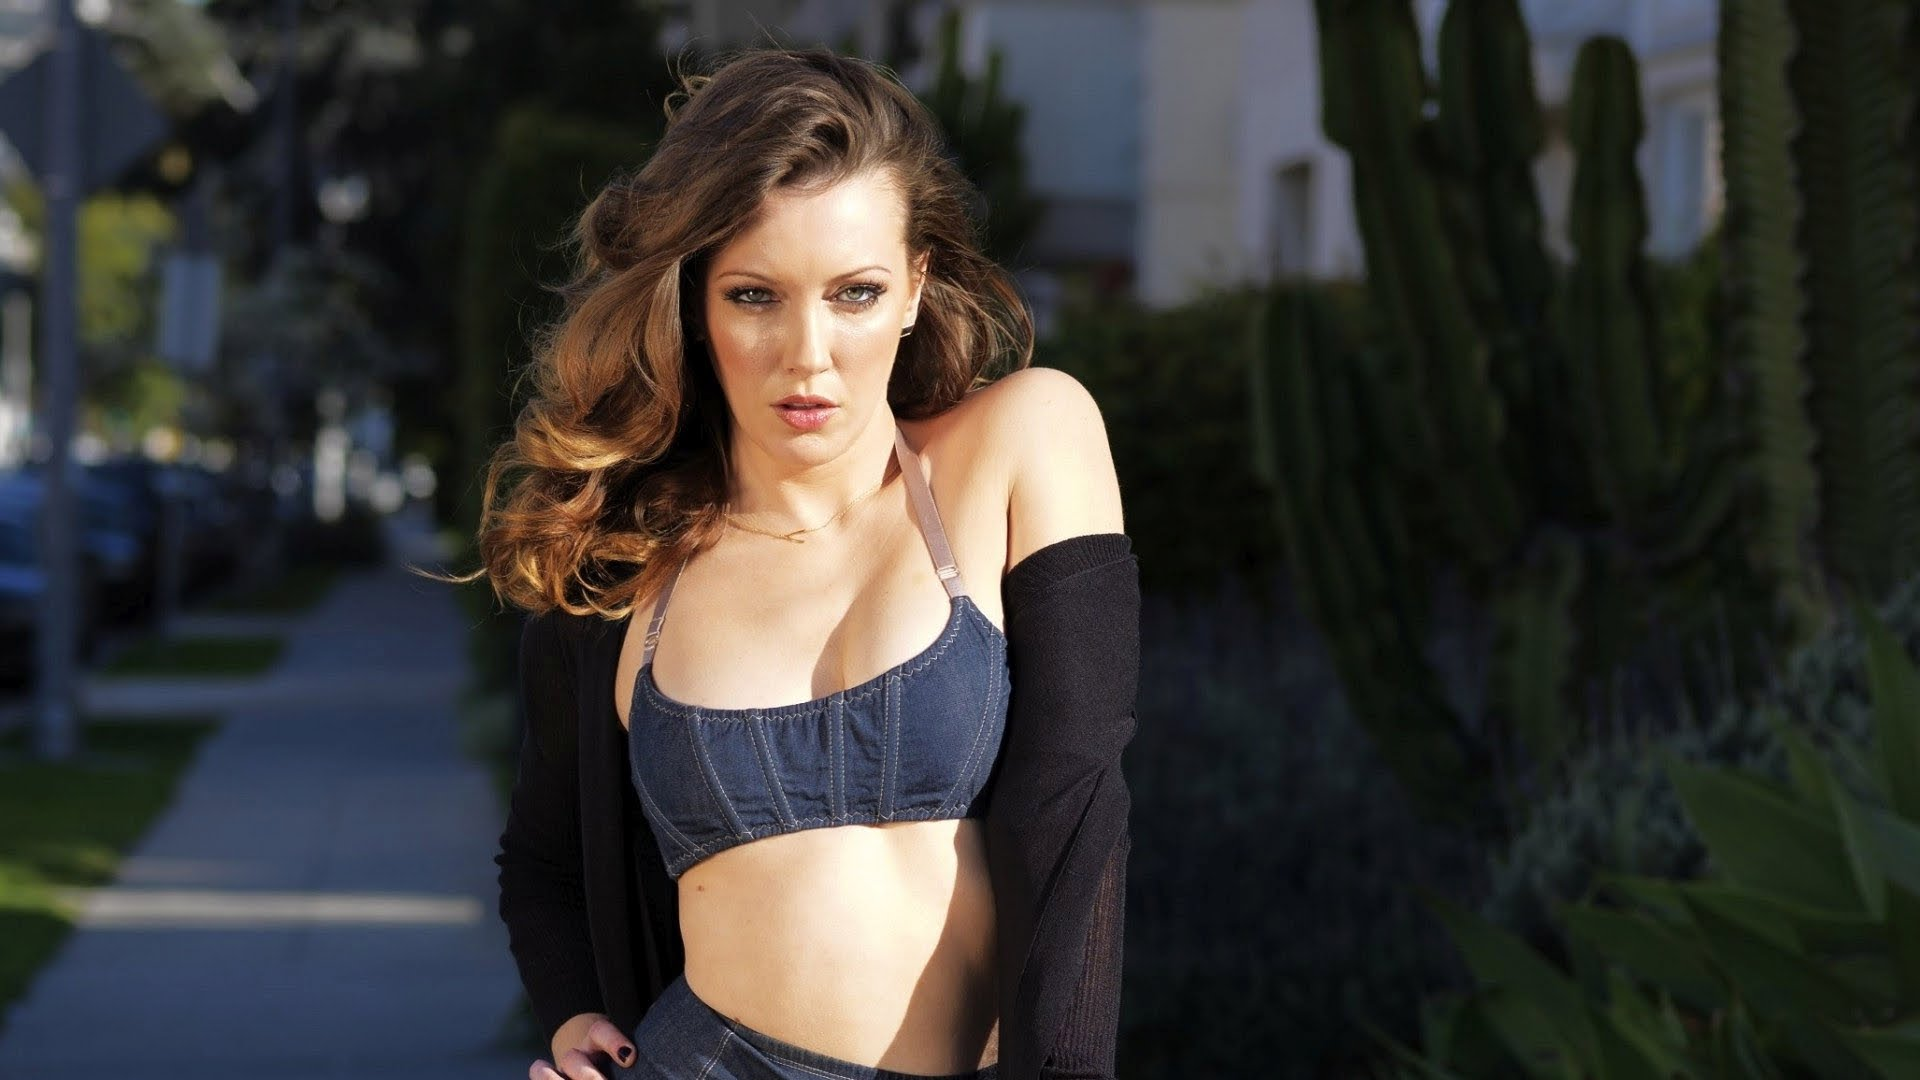 Watch Katie Cassidy Photos video